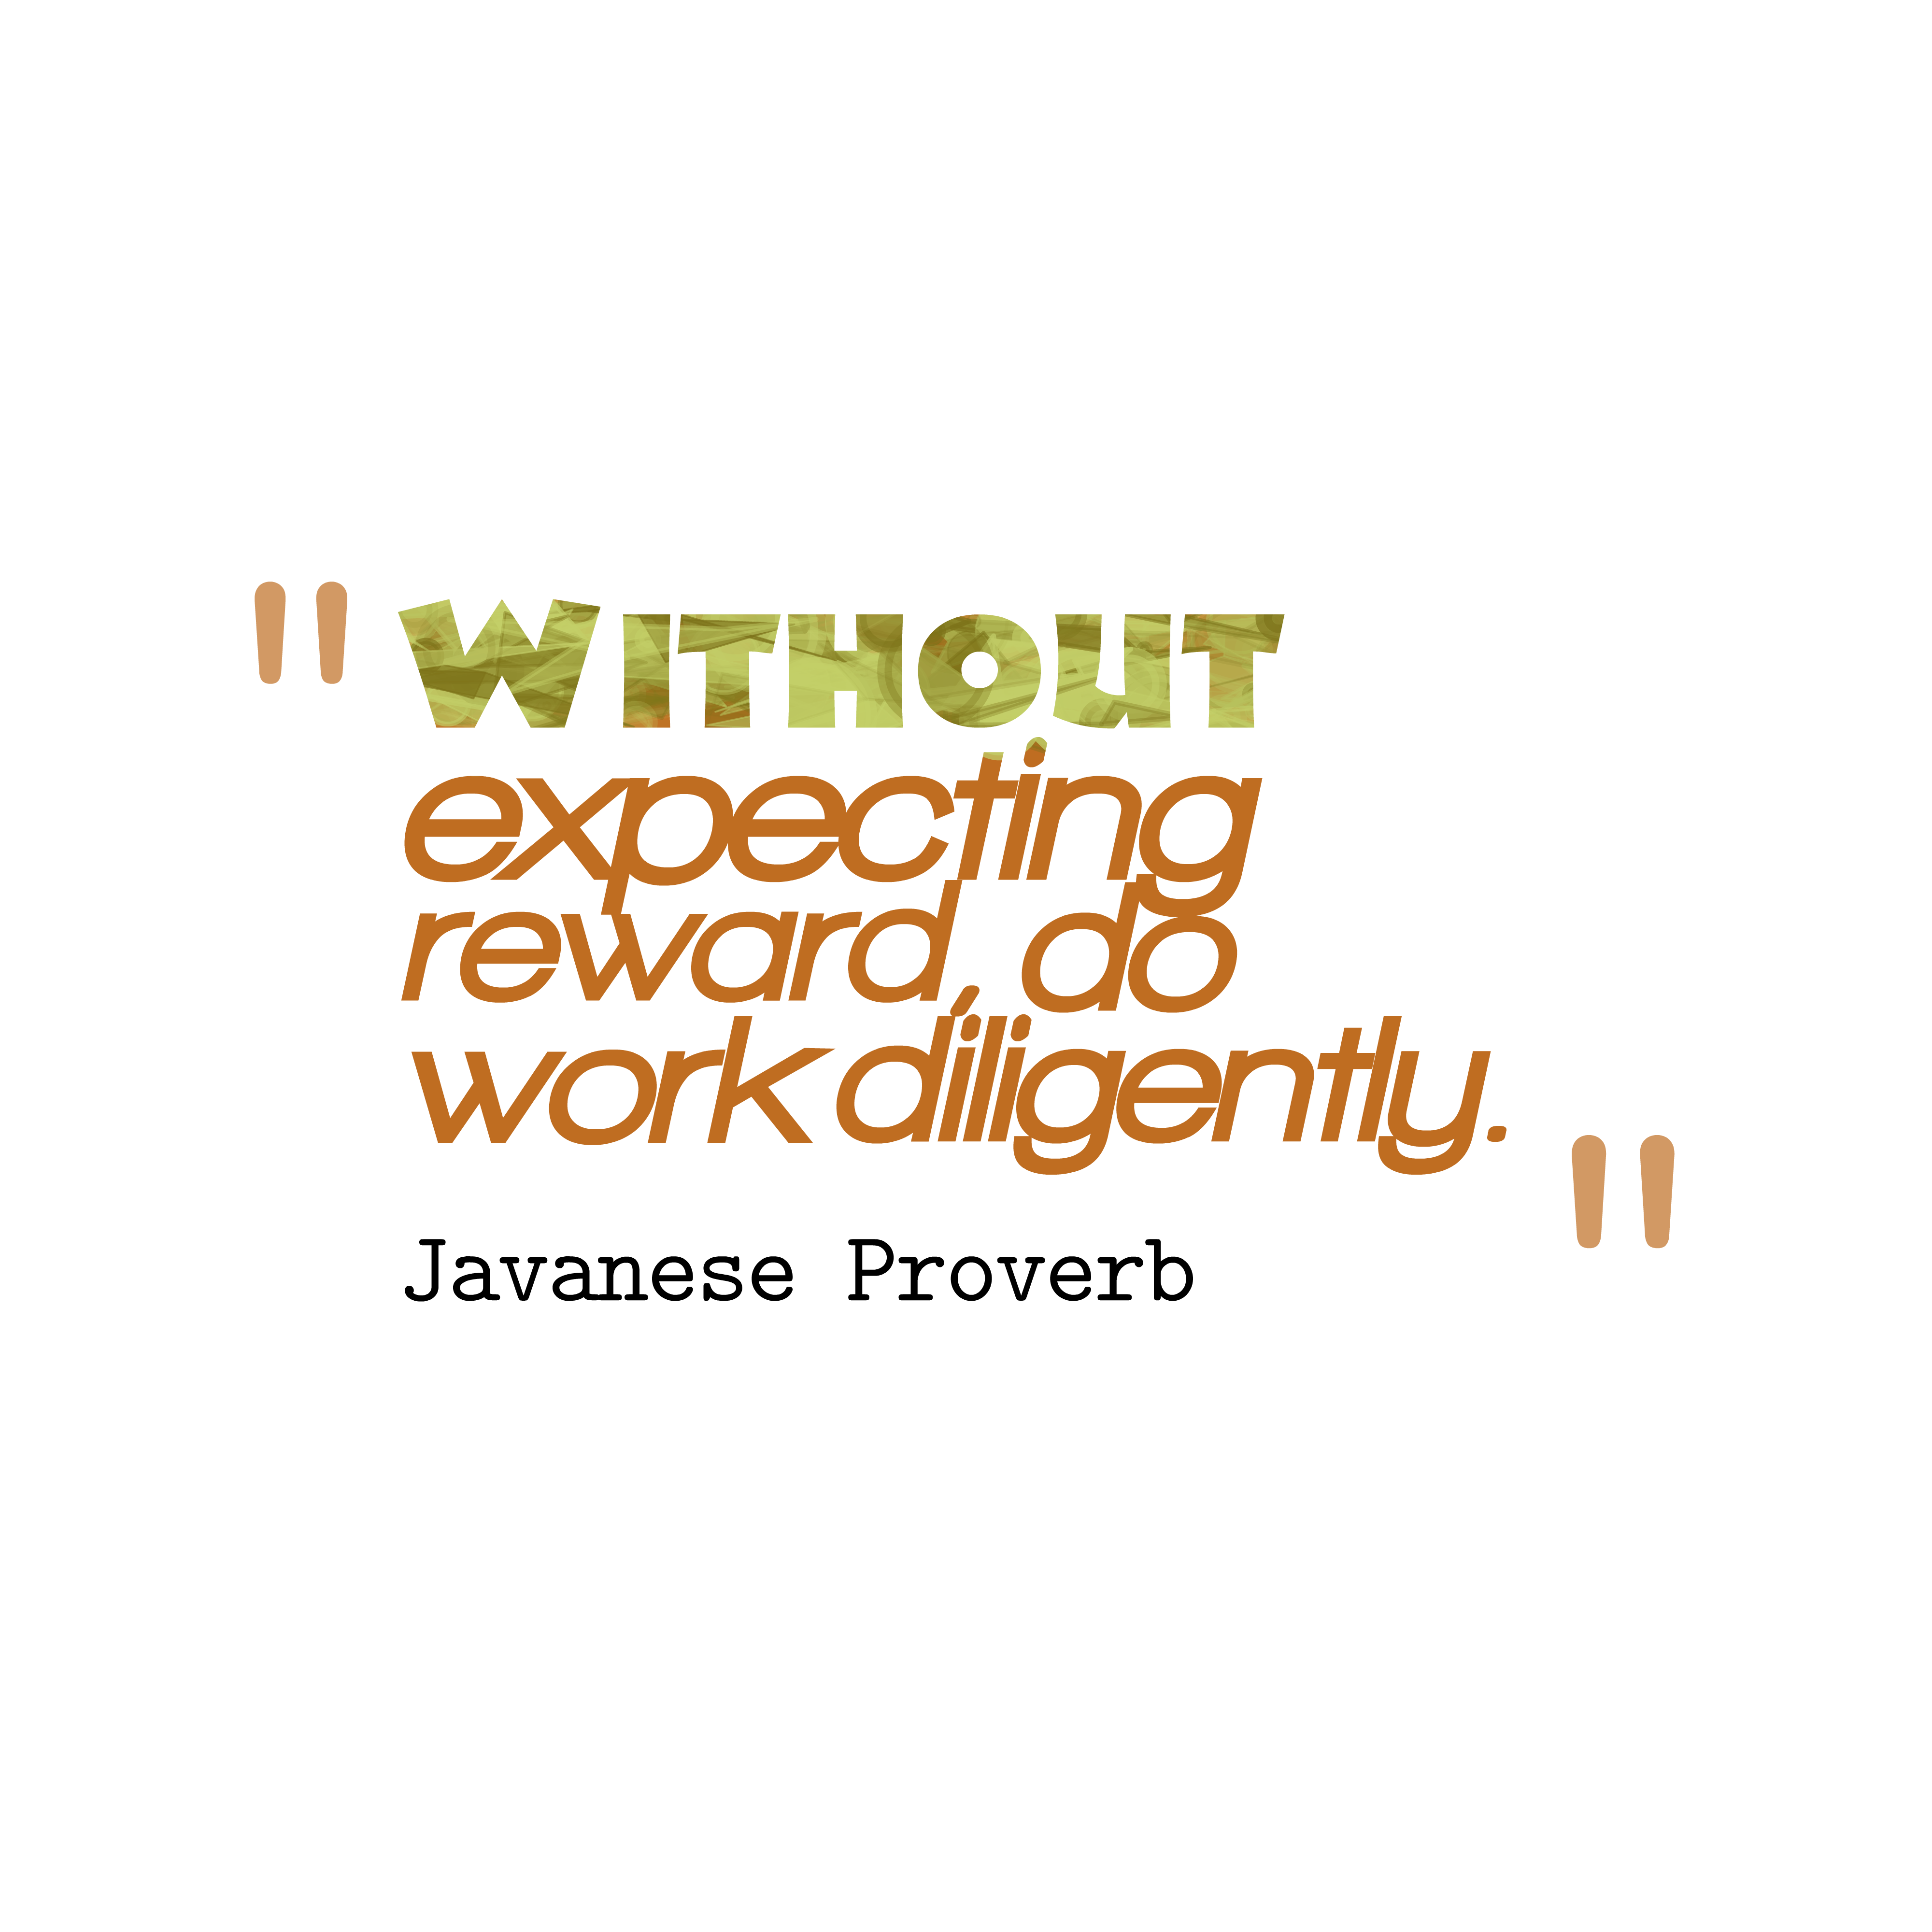 Javanese proverb about diligently